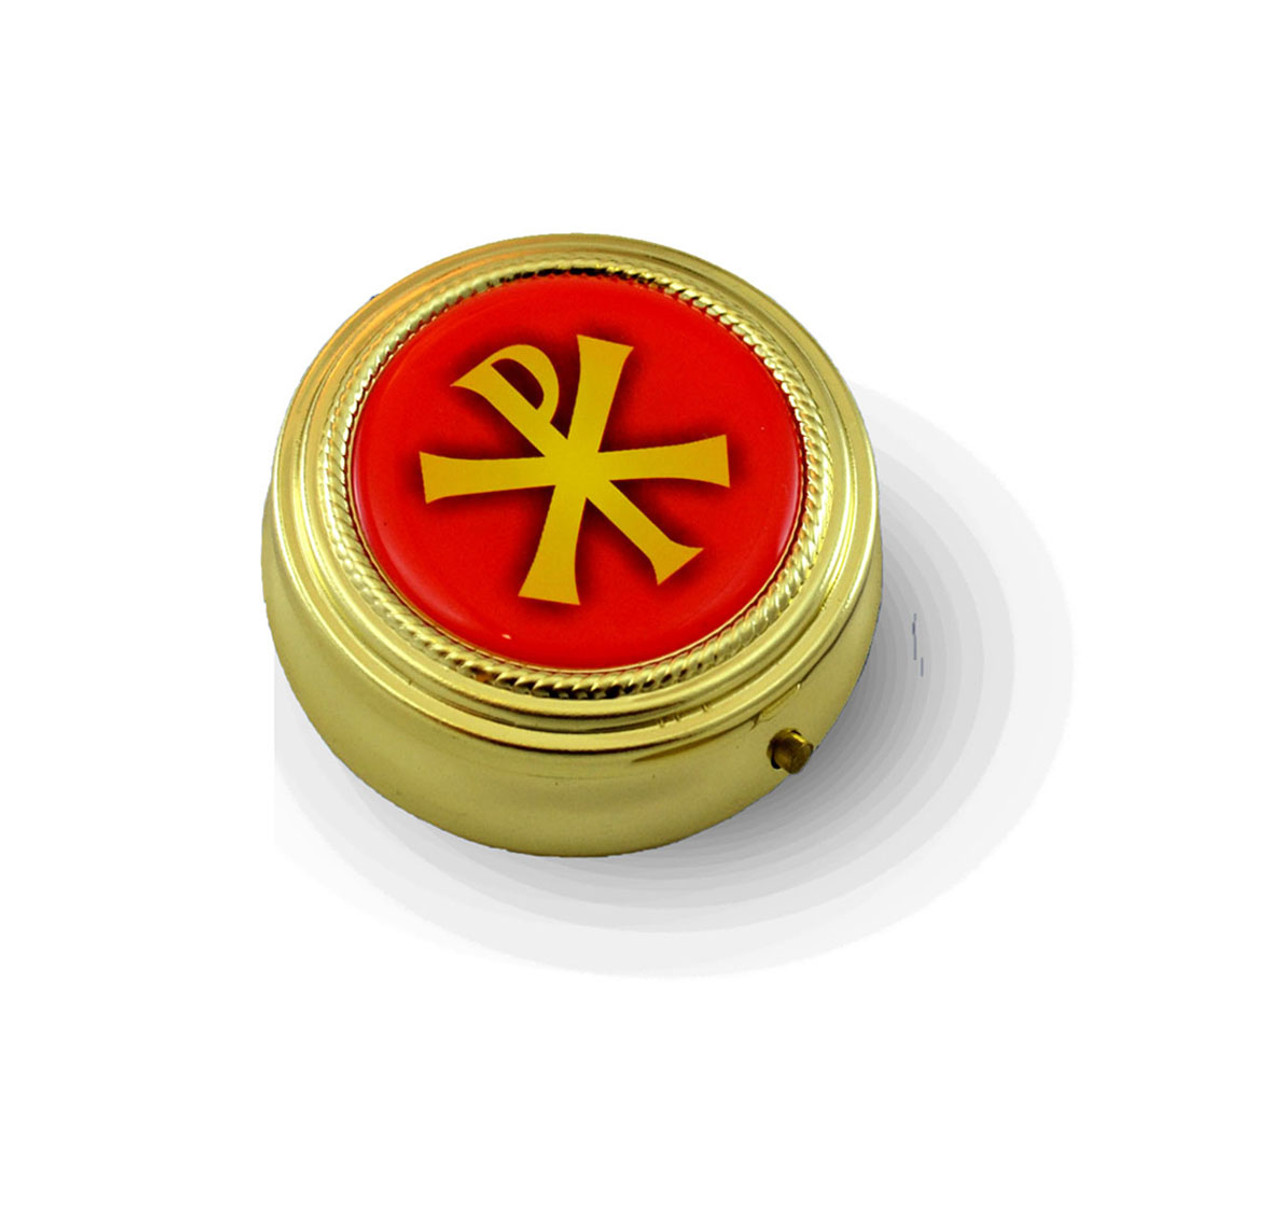 CS Pyx with Chi Rho Small Size 5-8 Hosts